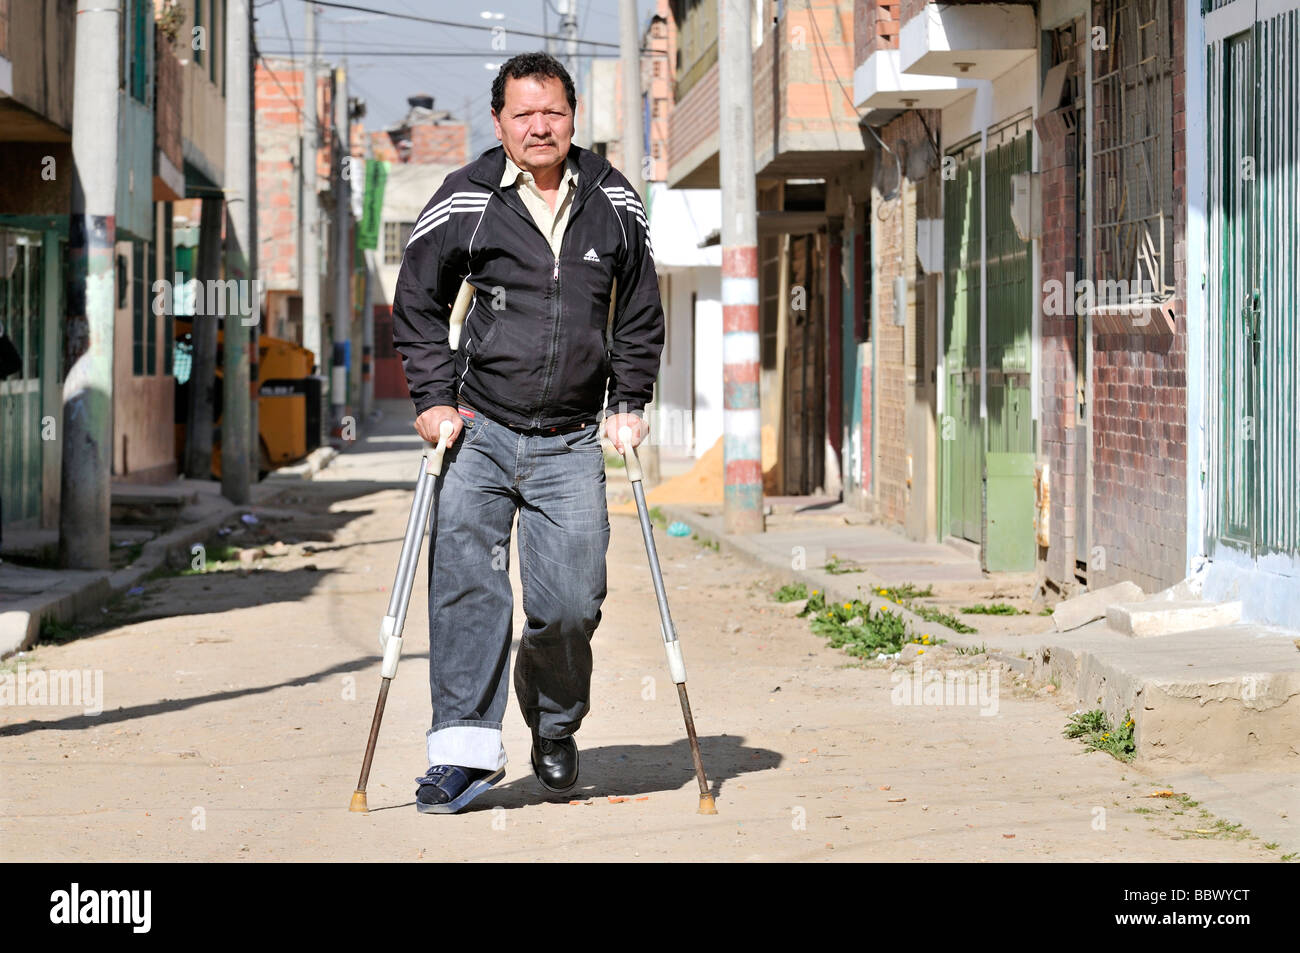 Leprosy patient with crutches on the street, Bogota, Colombia, South America - Stock Image